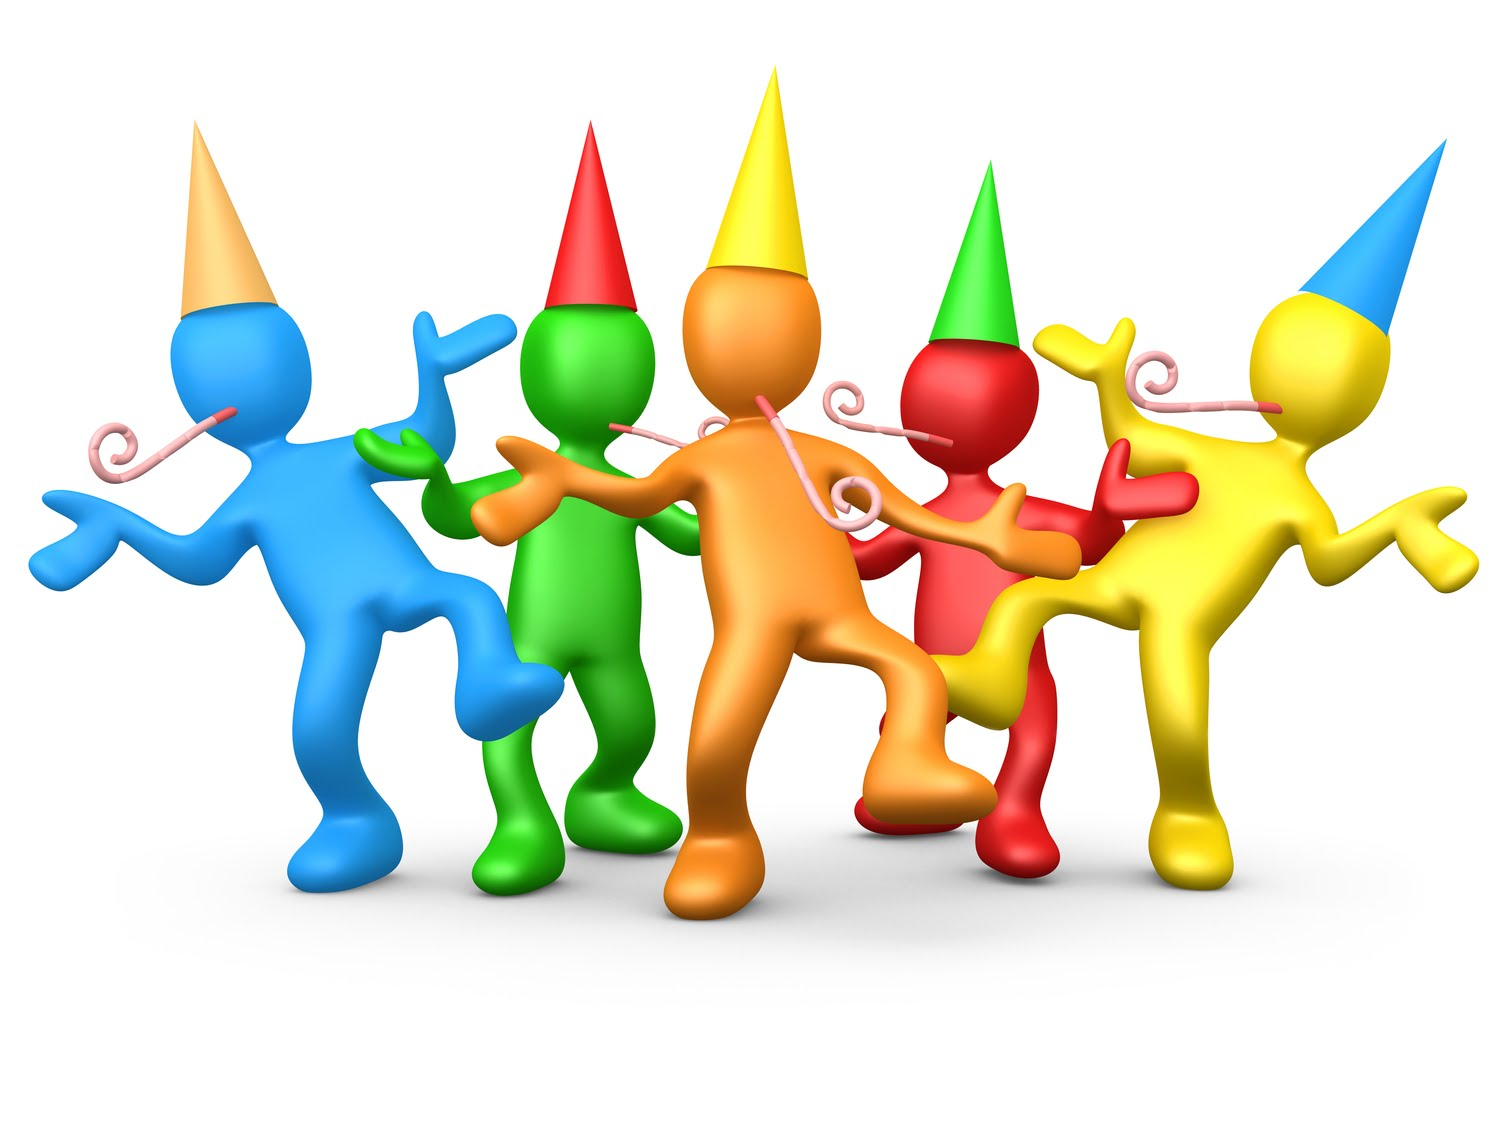 Ceremony clipart team celebration Cliparts Staff Clipart Supermarket Cliparts